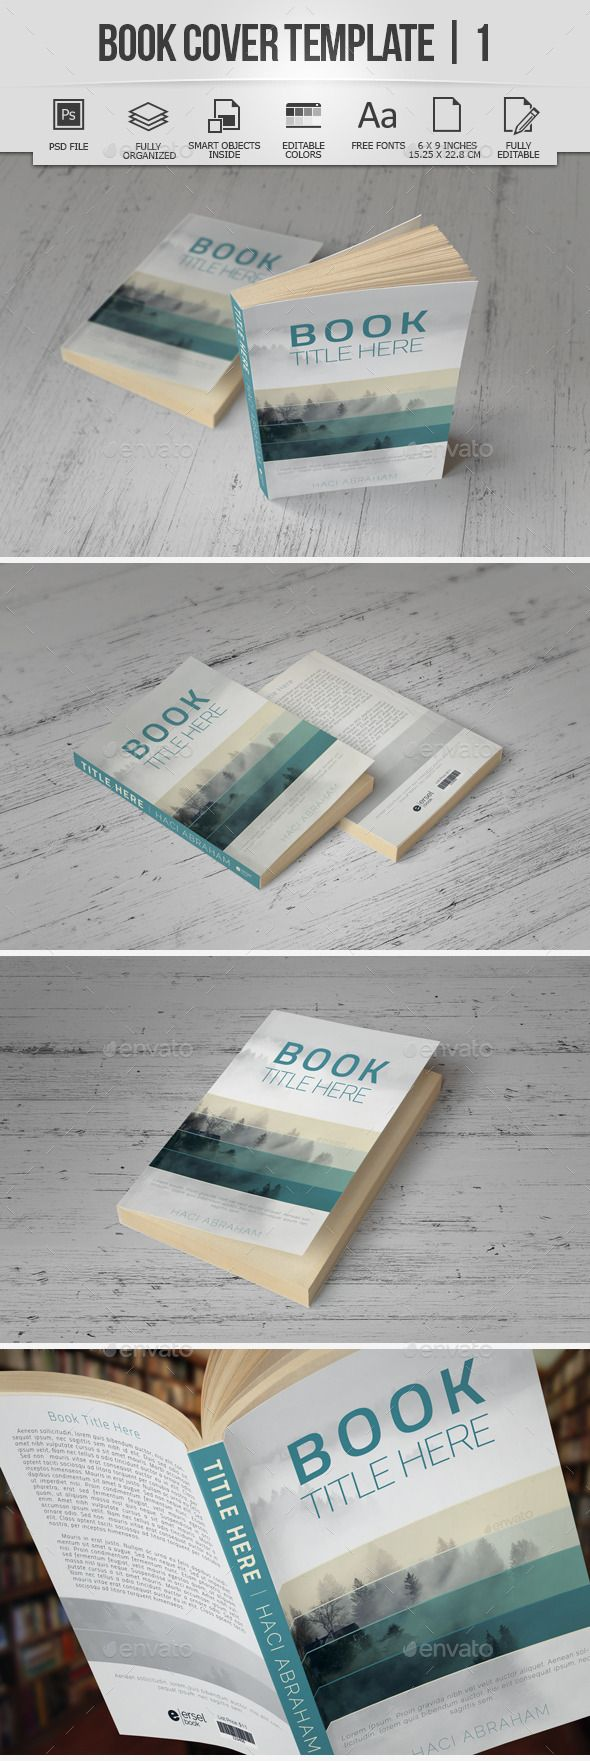 Book Cover Template | 1 — Photoshop PSD #back #blue • Available here → https://graphicriver.net/item/book-cover-template-1/9550223?ref=pxcr